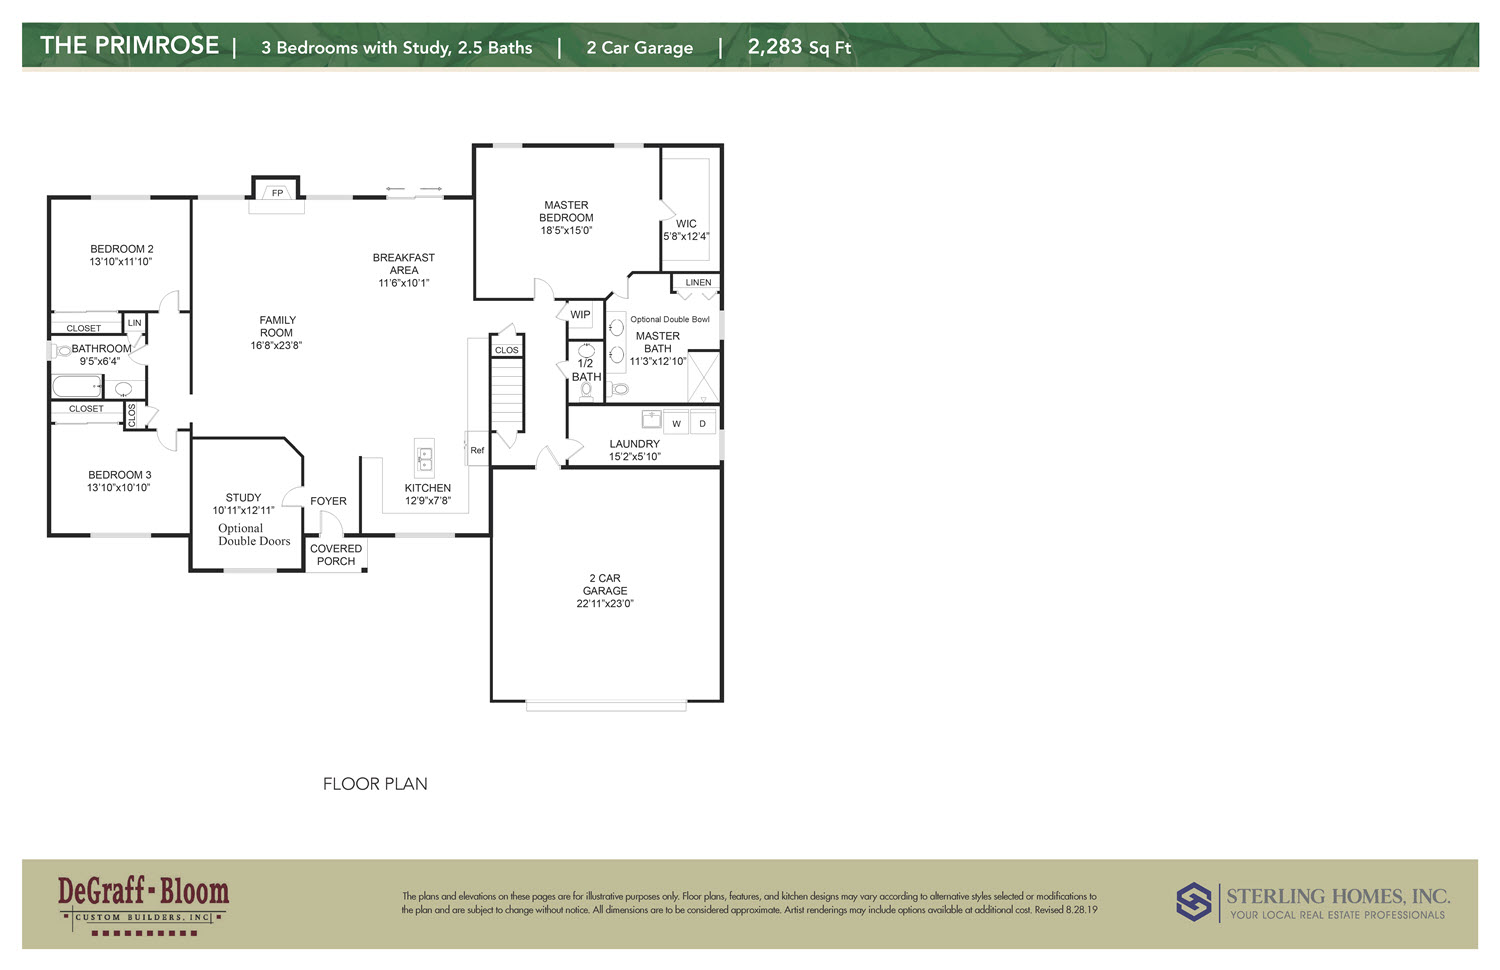 The Primrose Floorplan